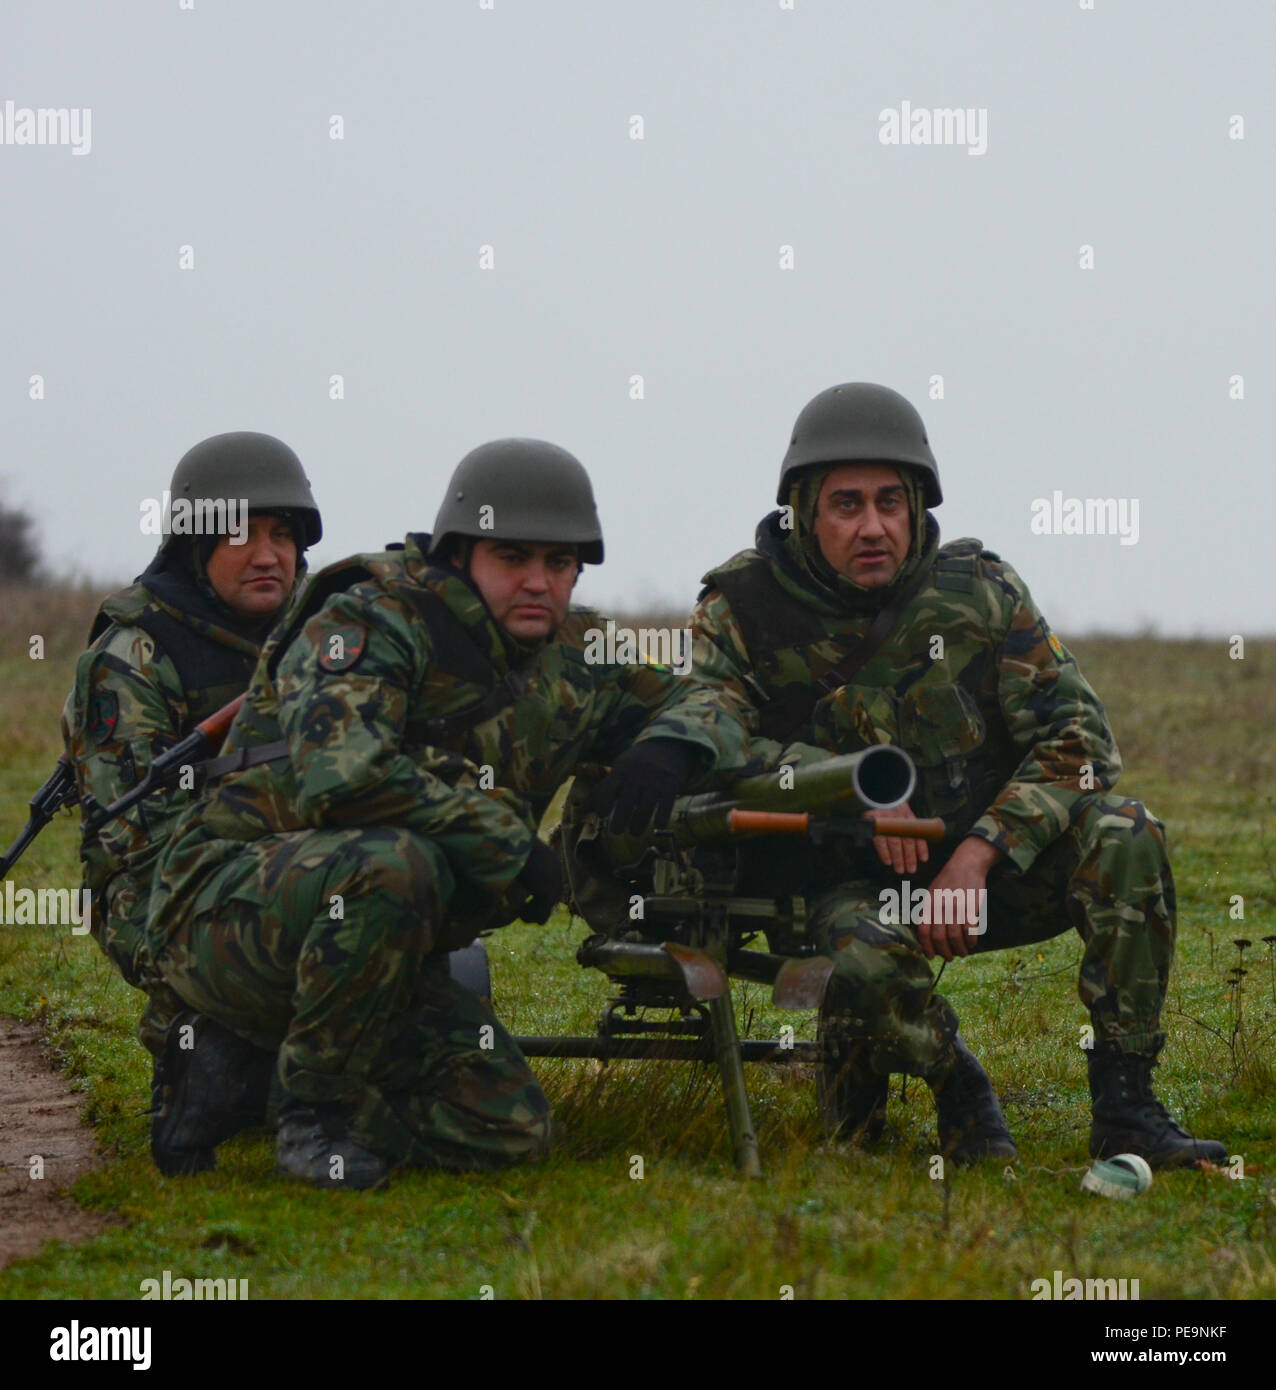 Bulgarian Soldiers of 1-61st Mechanized Battalion take their battle positions with an M20 Recoilless Rifle during Exercise Peace Sentinel at Novo Selo Training Center, Bulgaria, Nov. 24, 2015. (U.S. Army photo by Staff Sgt. Steven M. Colvin/Released) - Stock Image